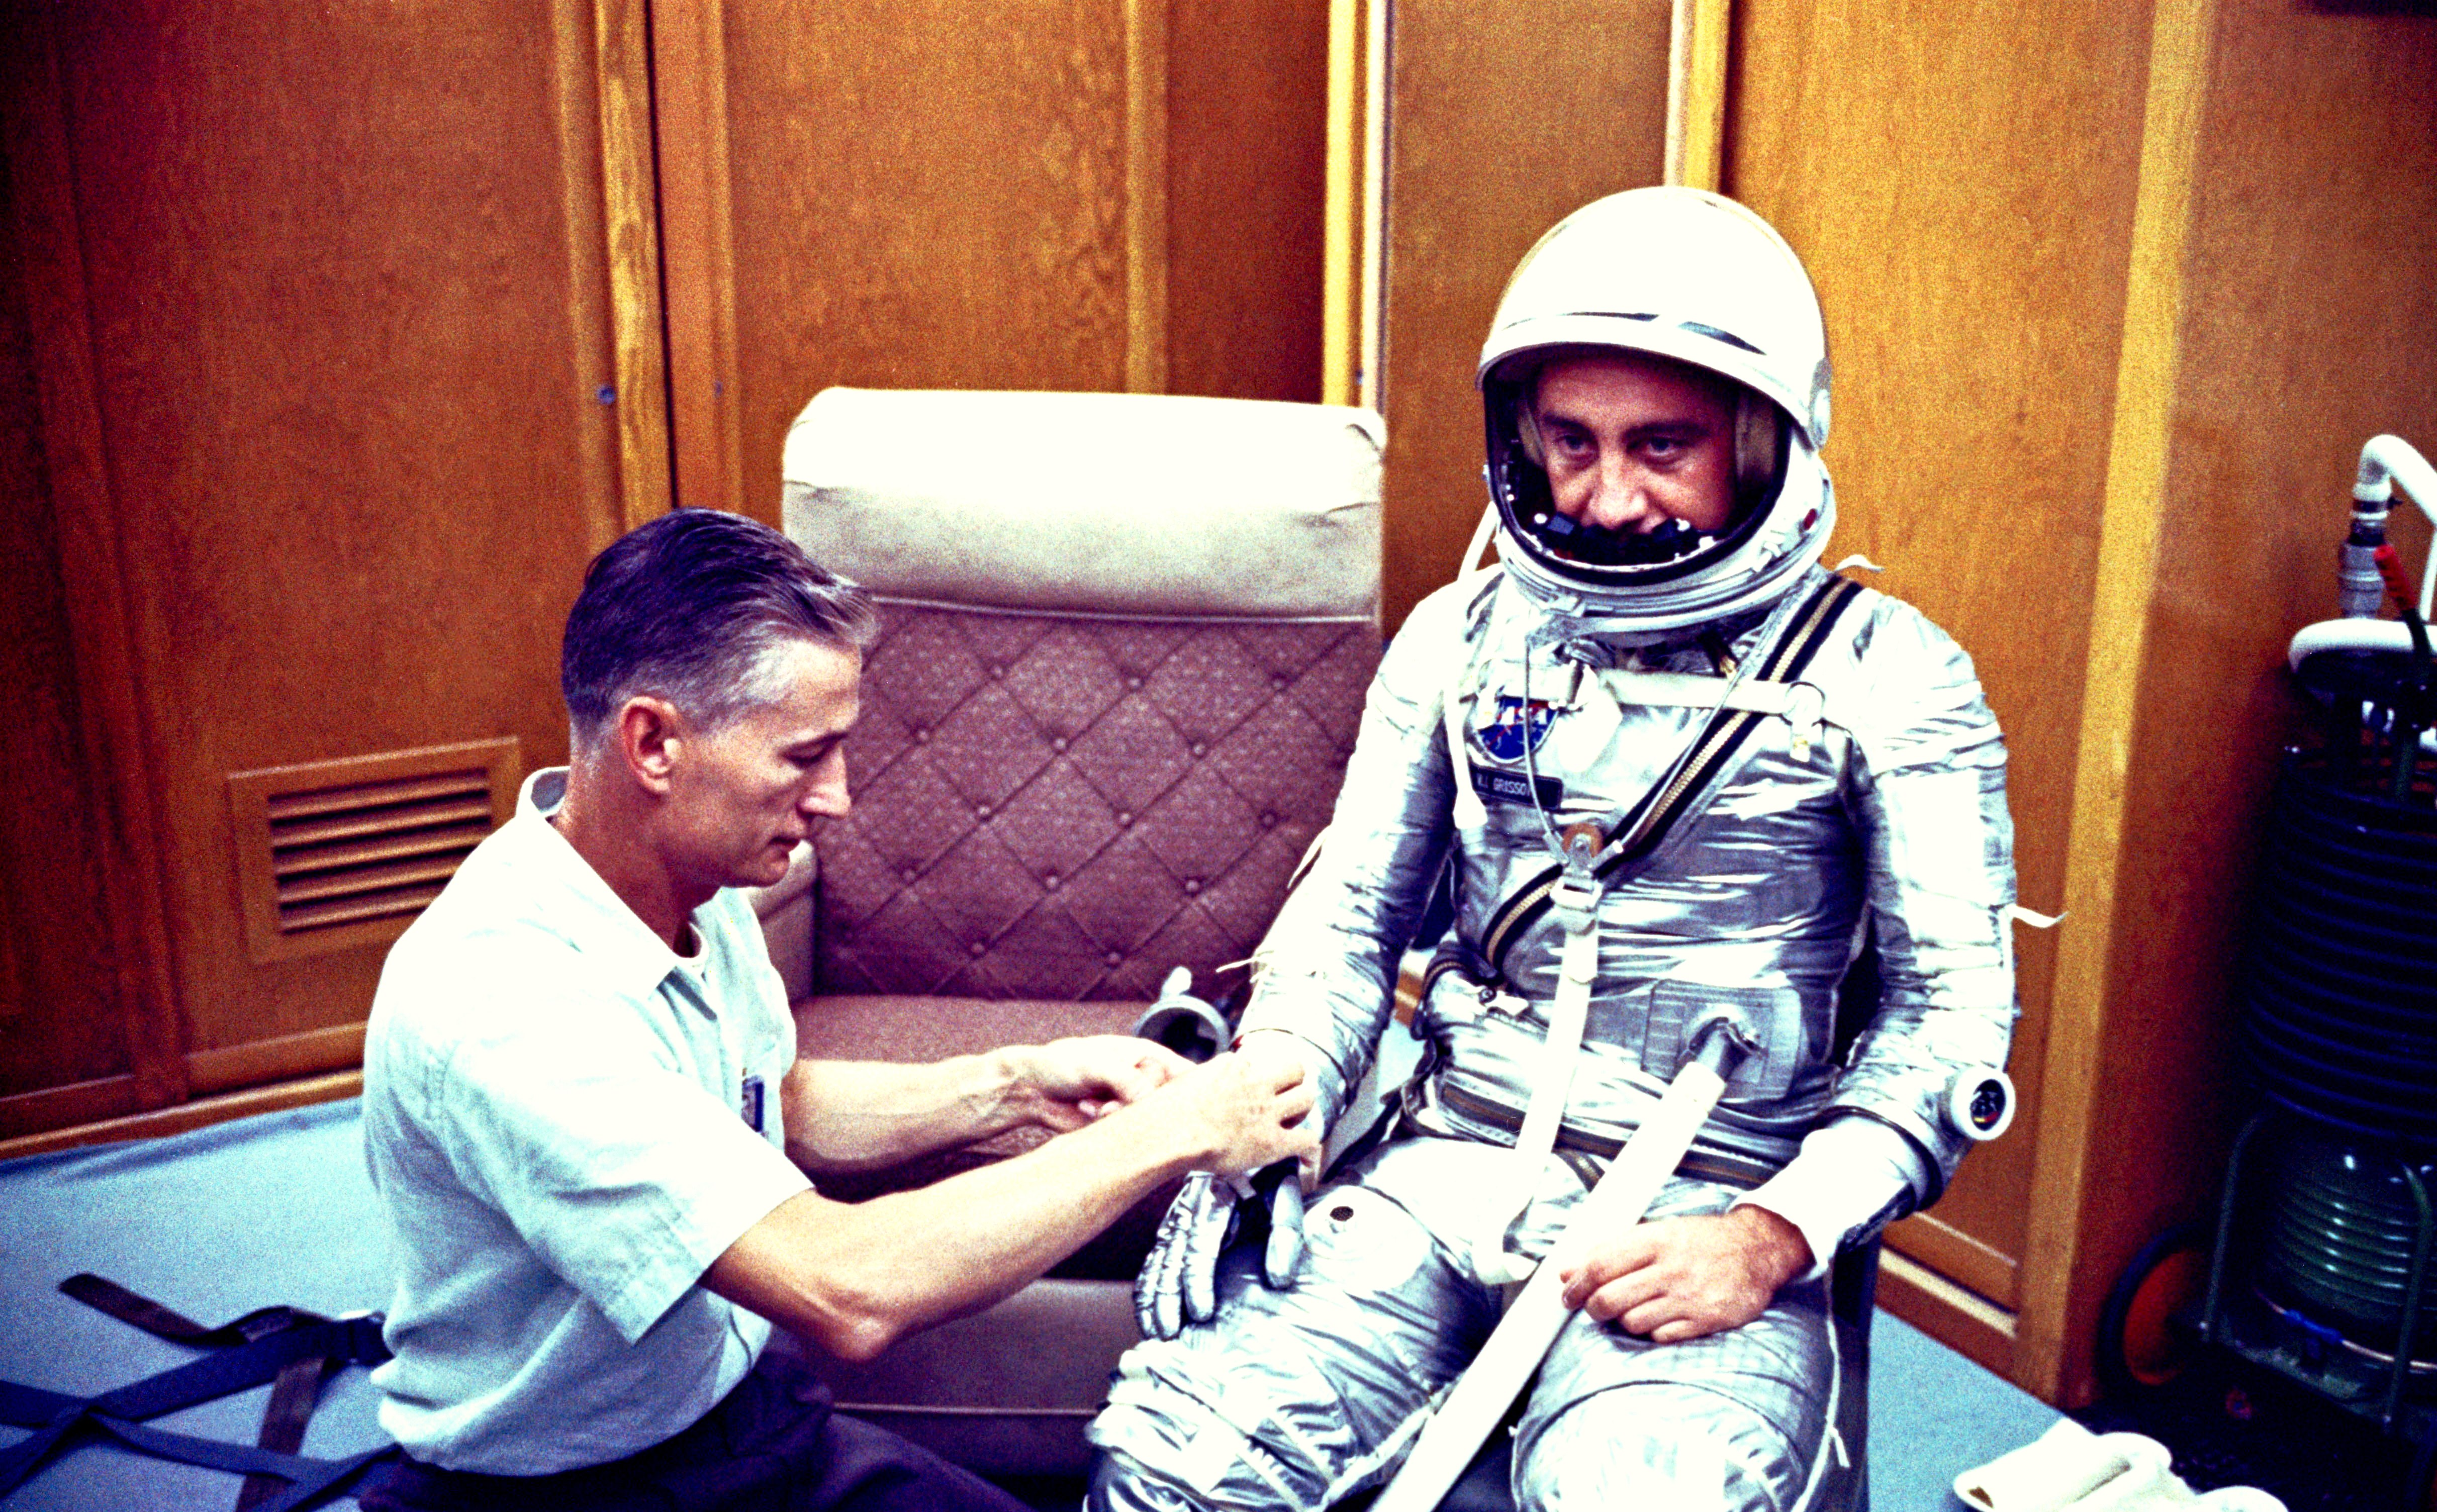 the Mercury-Redstone 4 (MR-4) mission, astronaut Virgil I. (Gus) Grissom chats with spaceflight equipment specialist Joe W. Schmidt in the personal equipment